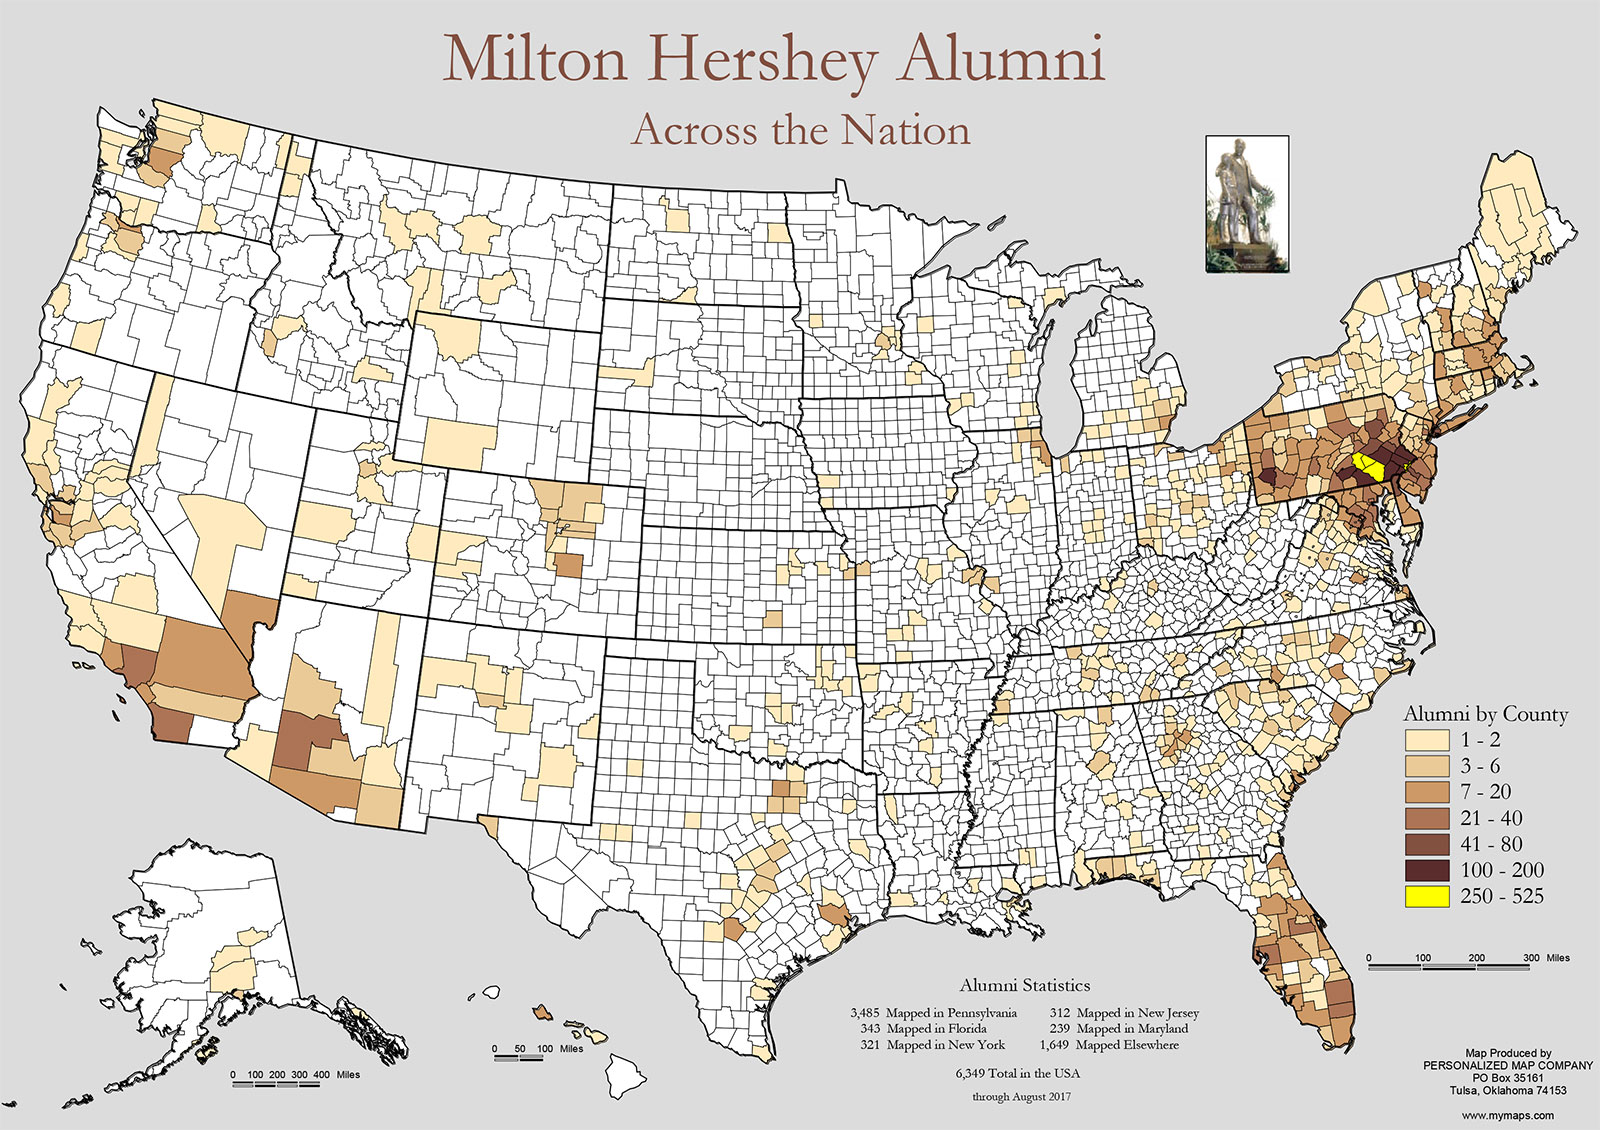 Alumni Across the Nation Map